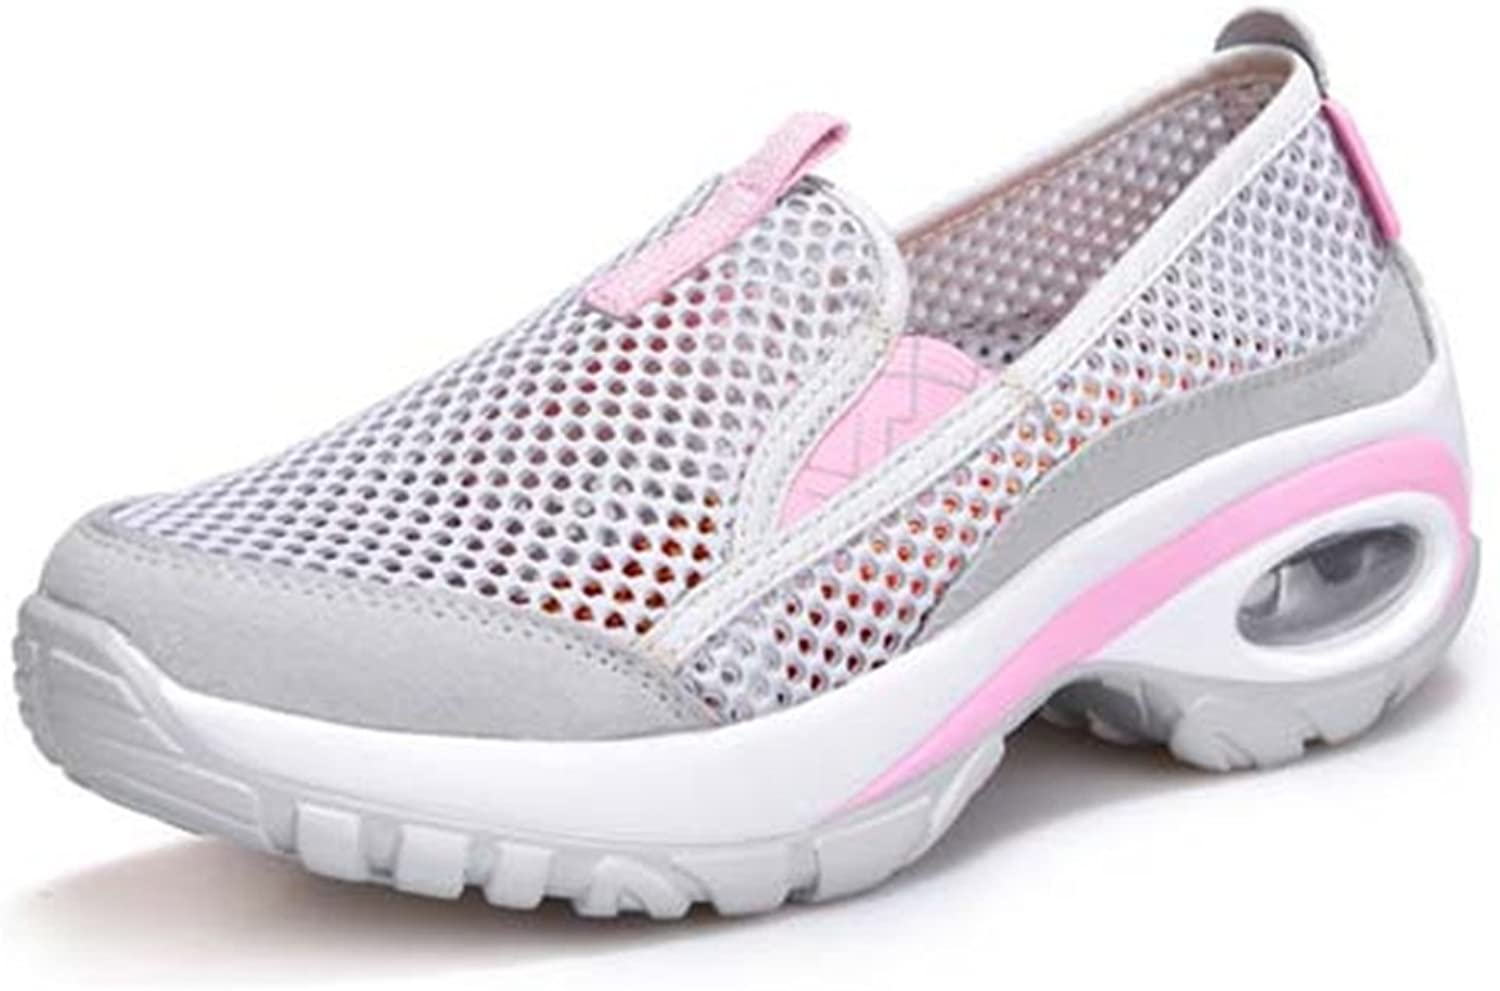 Walking shoes for Women's Slip on Sneakers Breathable shoes Lightweight Sneaker Go Walk Mesh Loafers